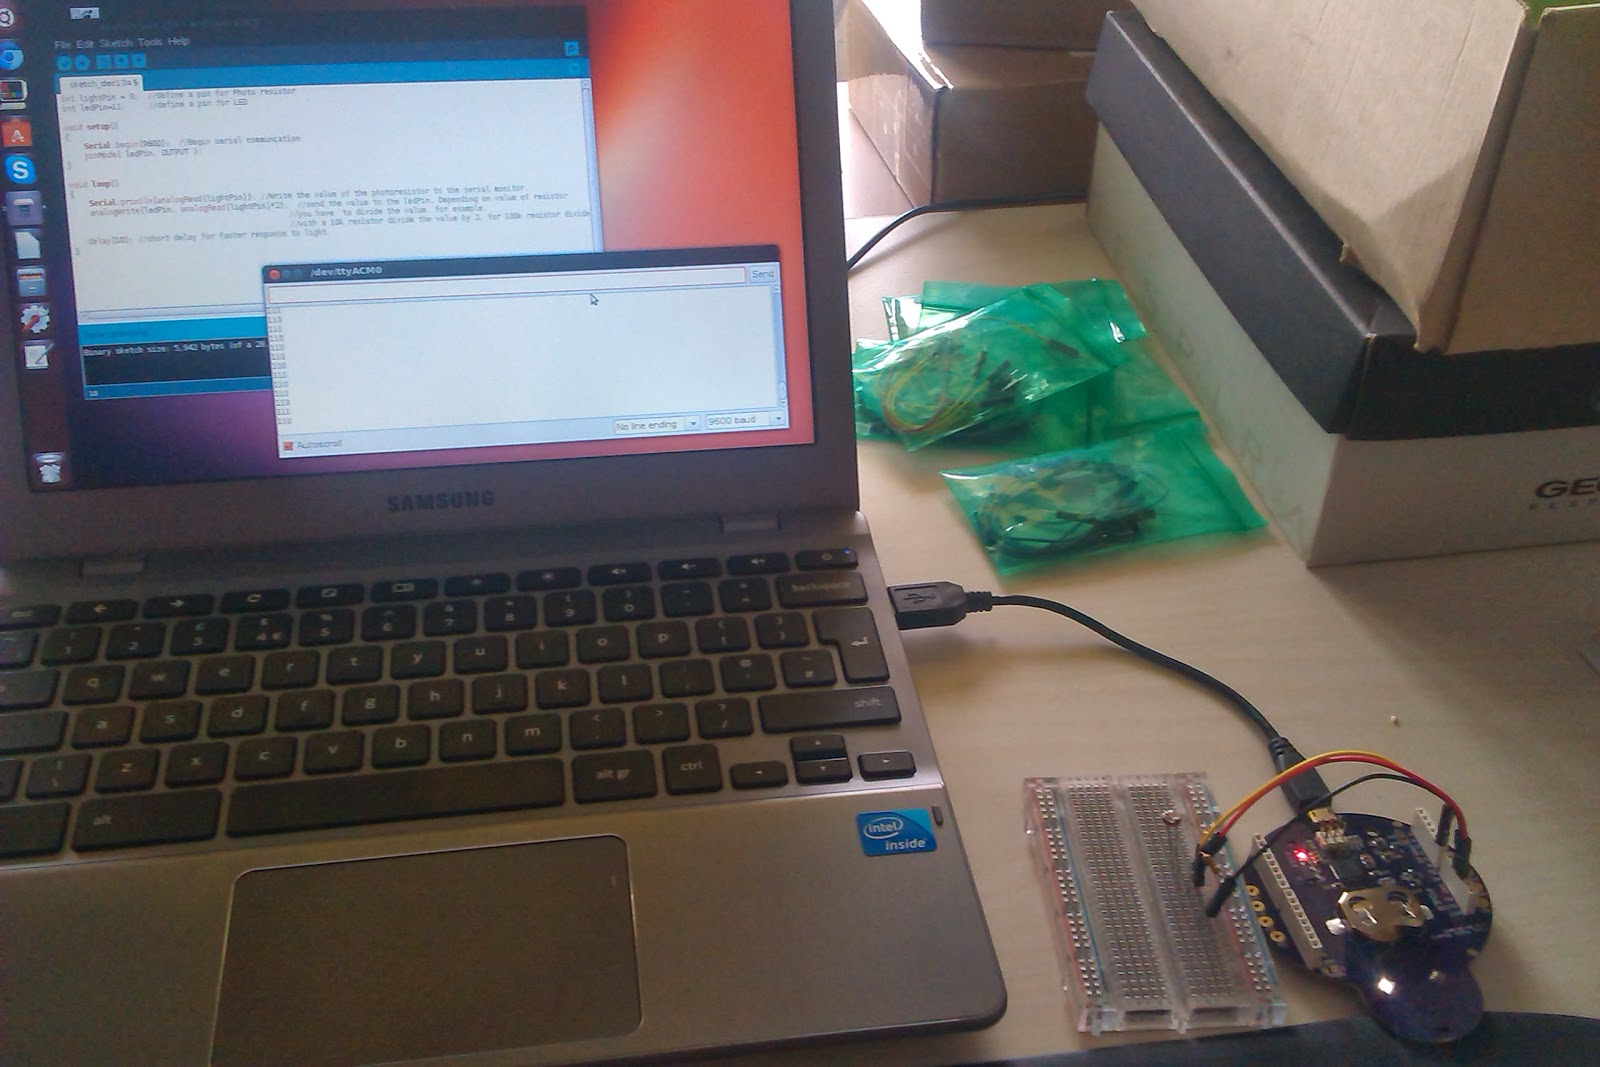 Arduino ide on chromebook via crouton lantau kilowatt